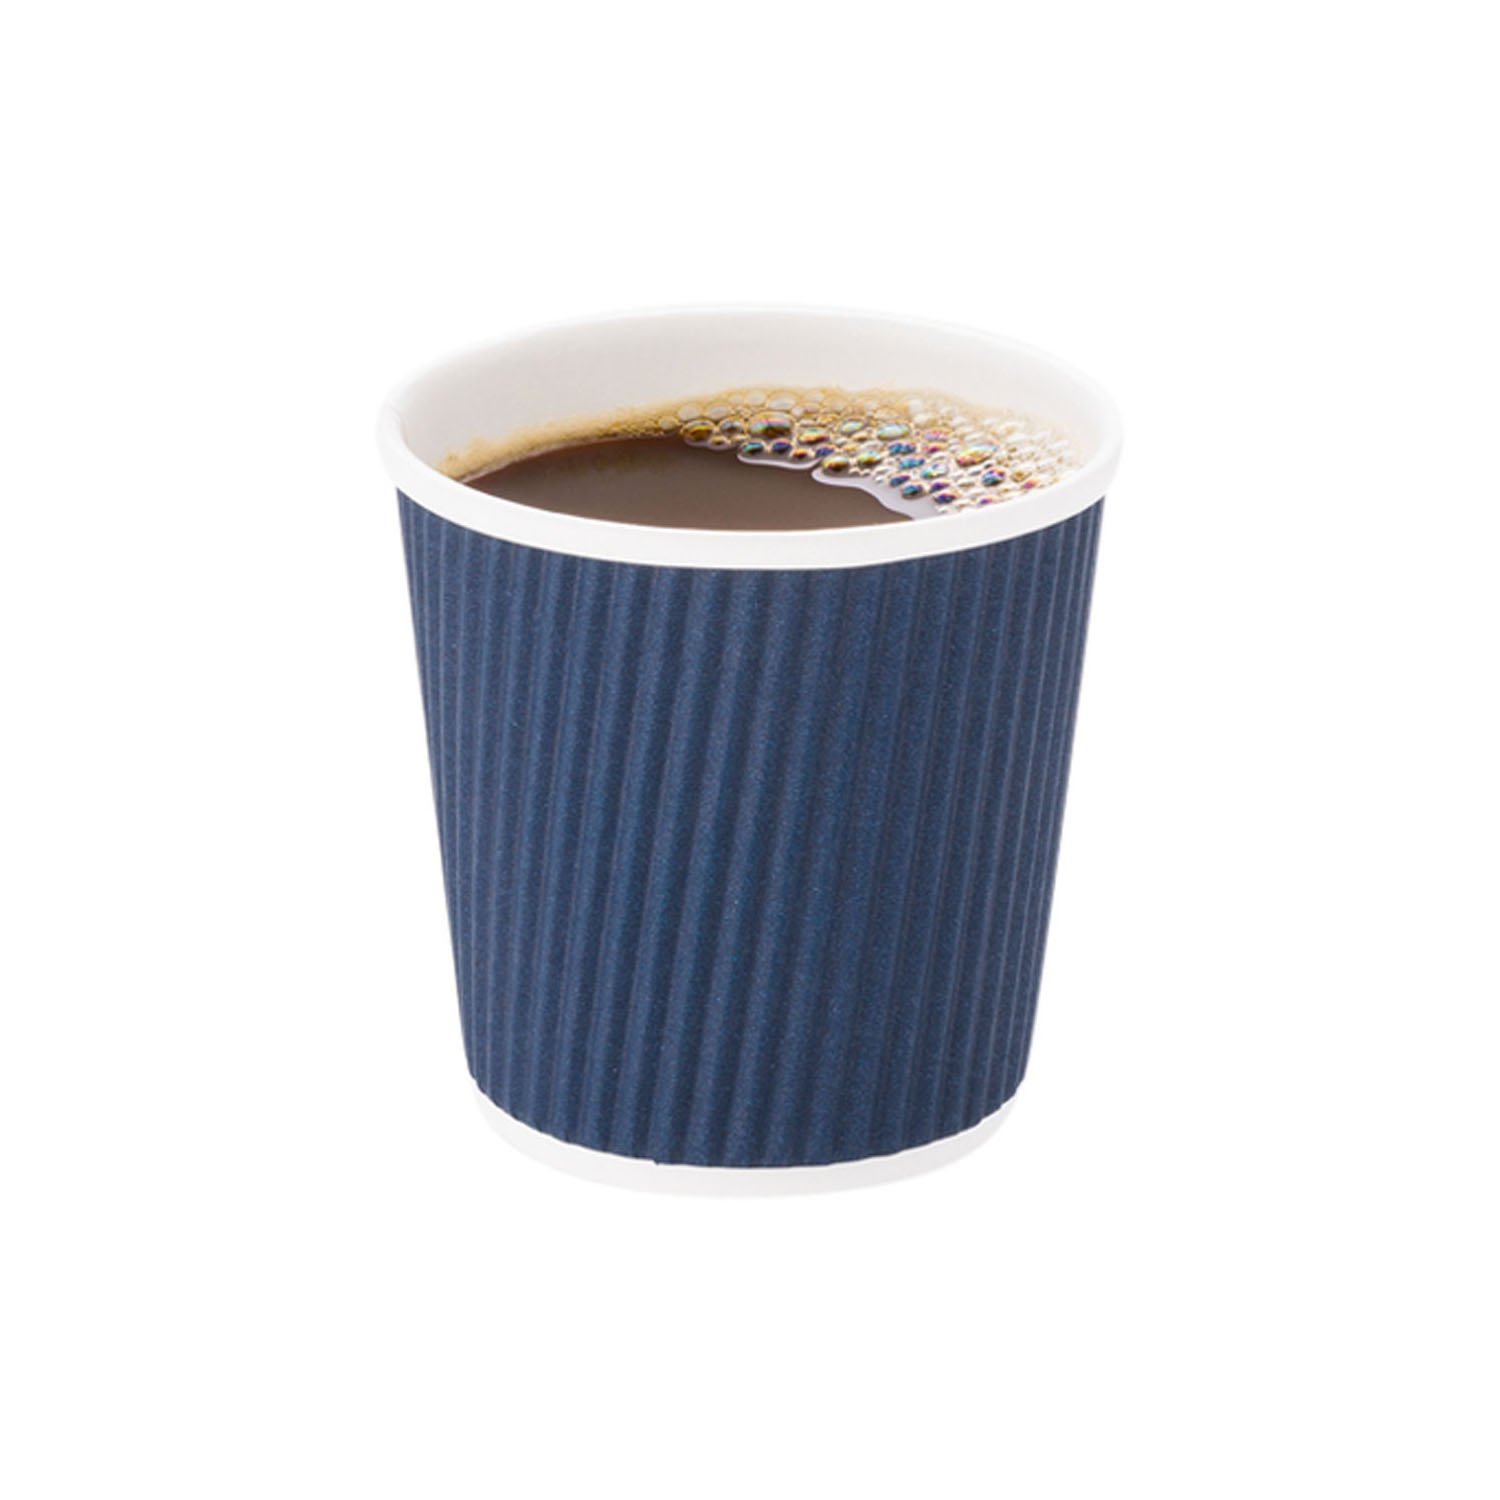 Disposable Paper Hot Cups - 500ct - Hot Beverage Cups, Paper Tea Cup - 4 oz  - Midnight Blue - Ripple Wall, No Need For Sleeves - Insulated - Wholesale